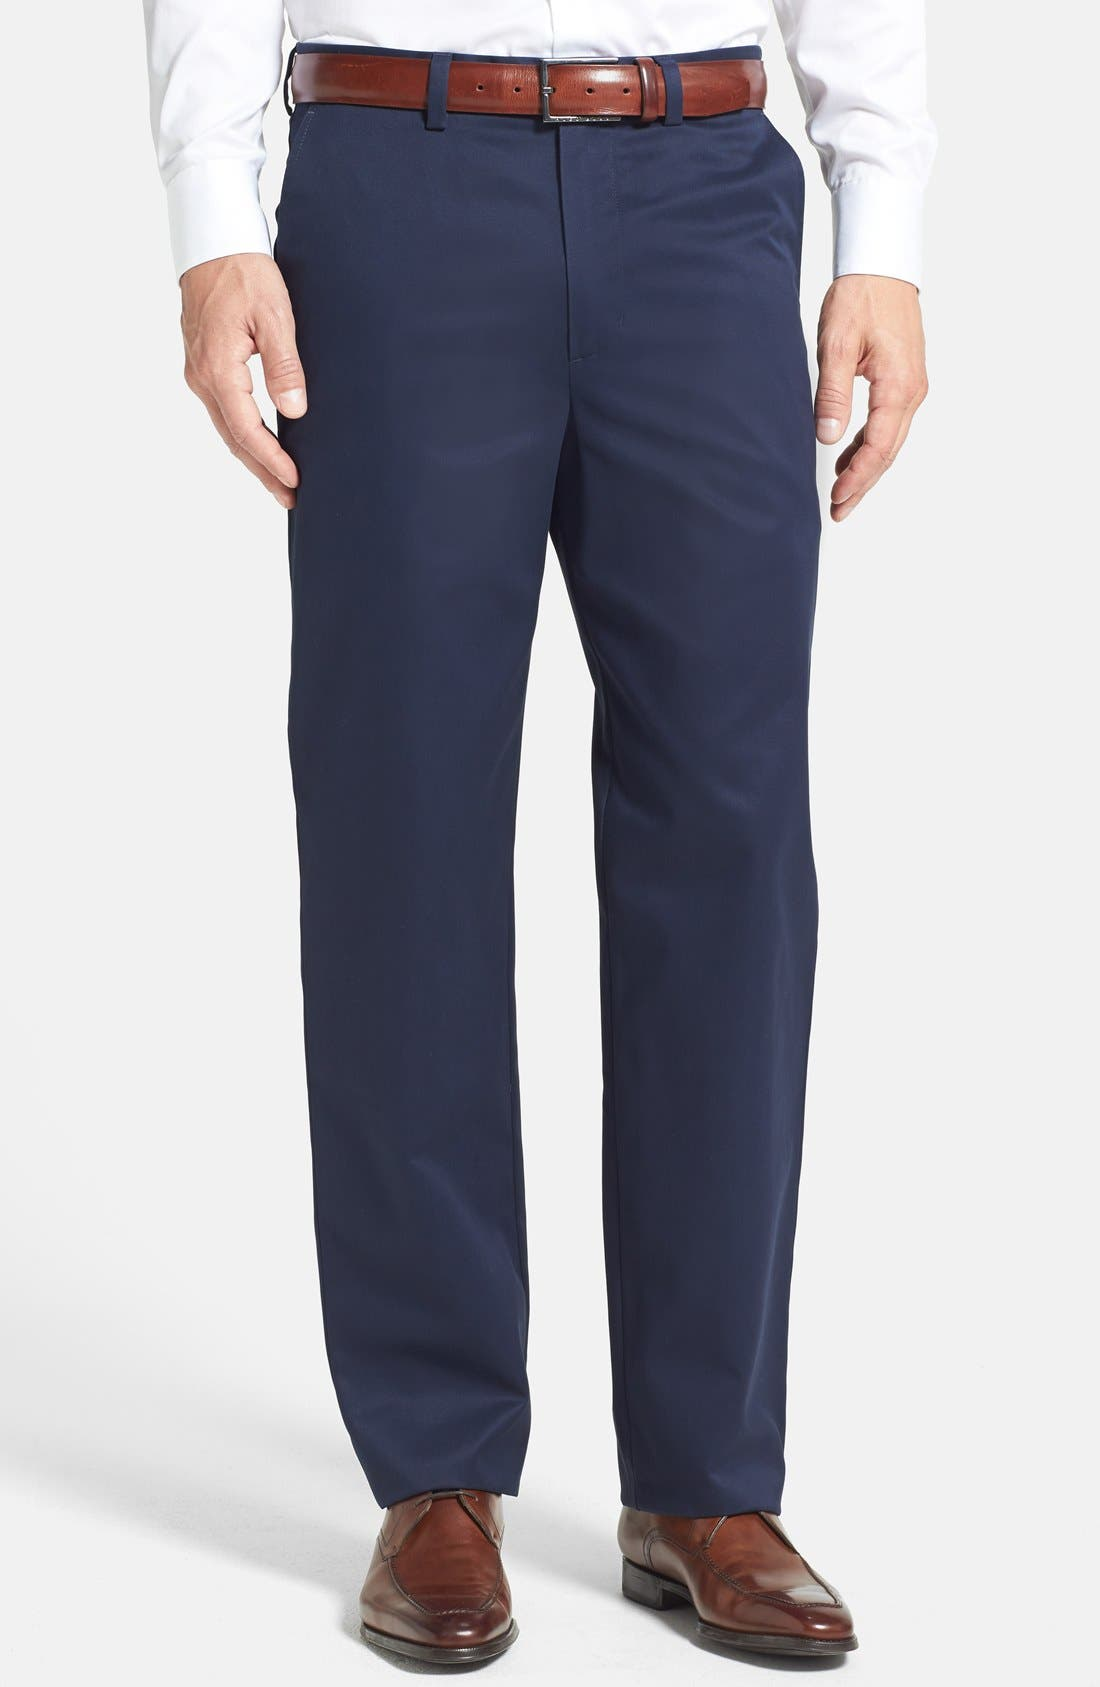 NORDSTROM MEN'S SHOP 'Classic' Smartcare™ Relaxed Fit Flat